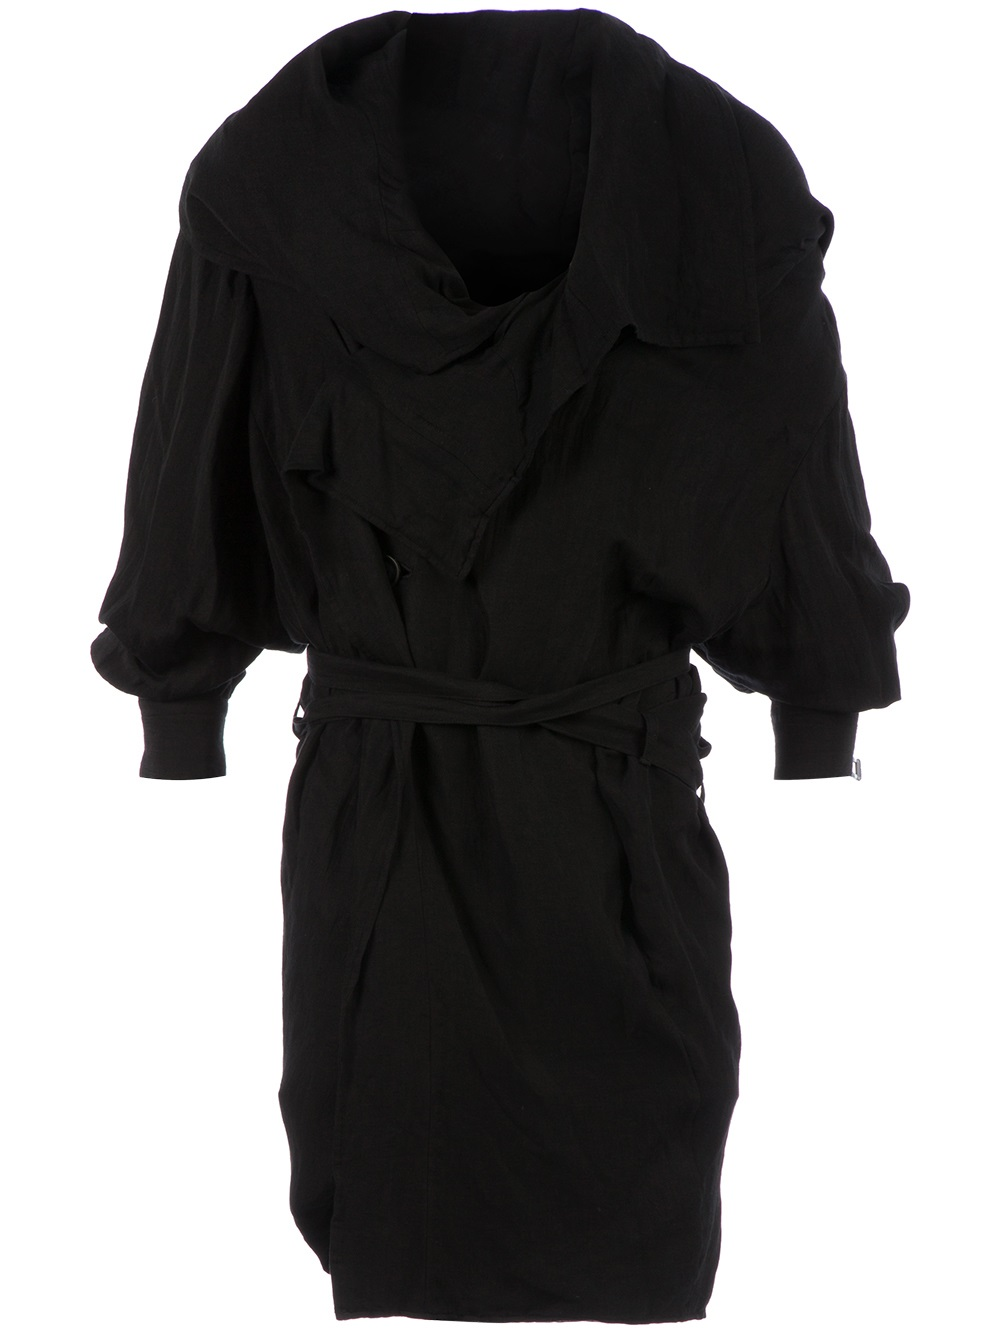 black trench coat with hood - photo #39